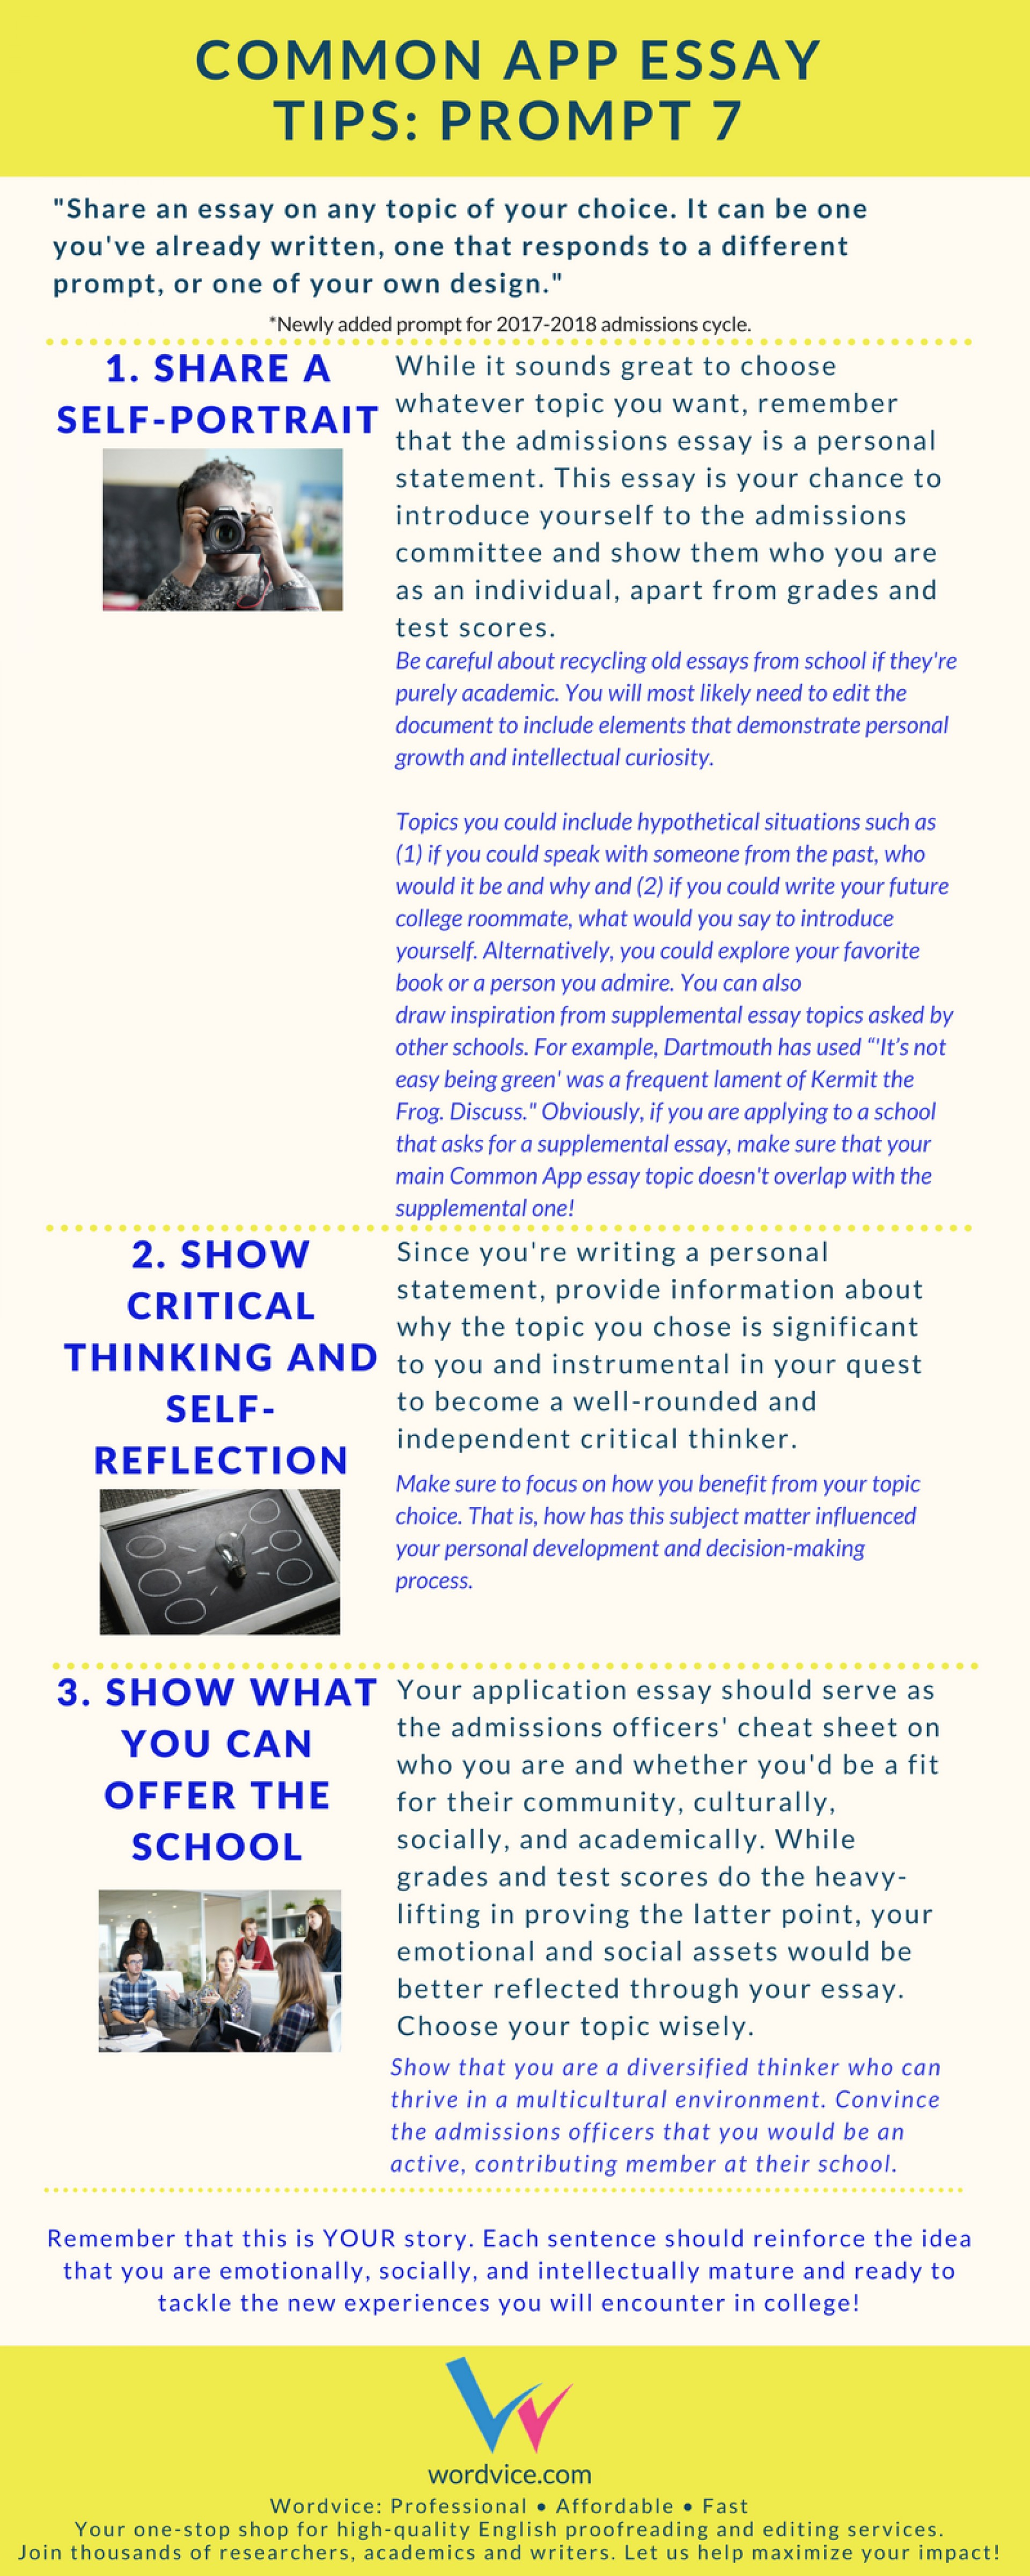 010 Common Application Essay Prompts Example App Brainstormprompt Best 2017 Examples 2017-18 A Guide 1920